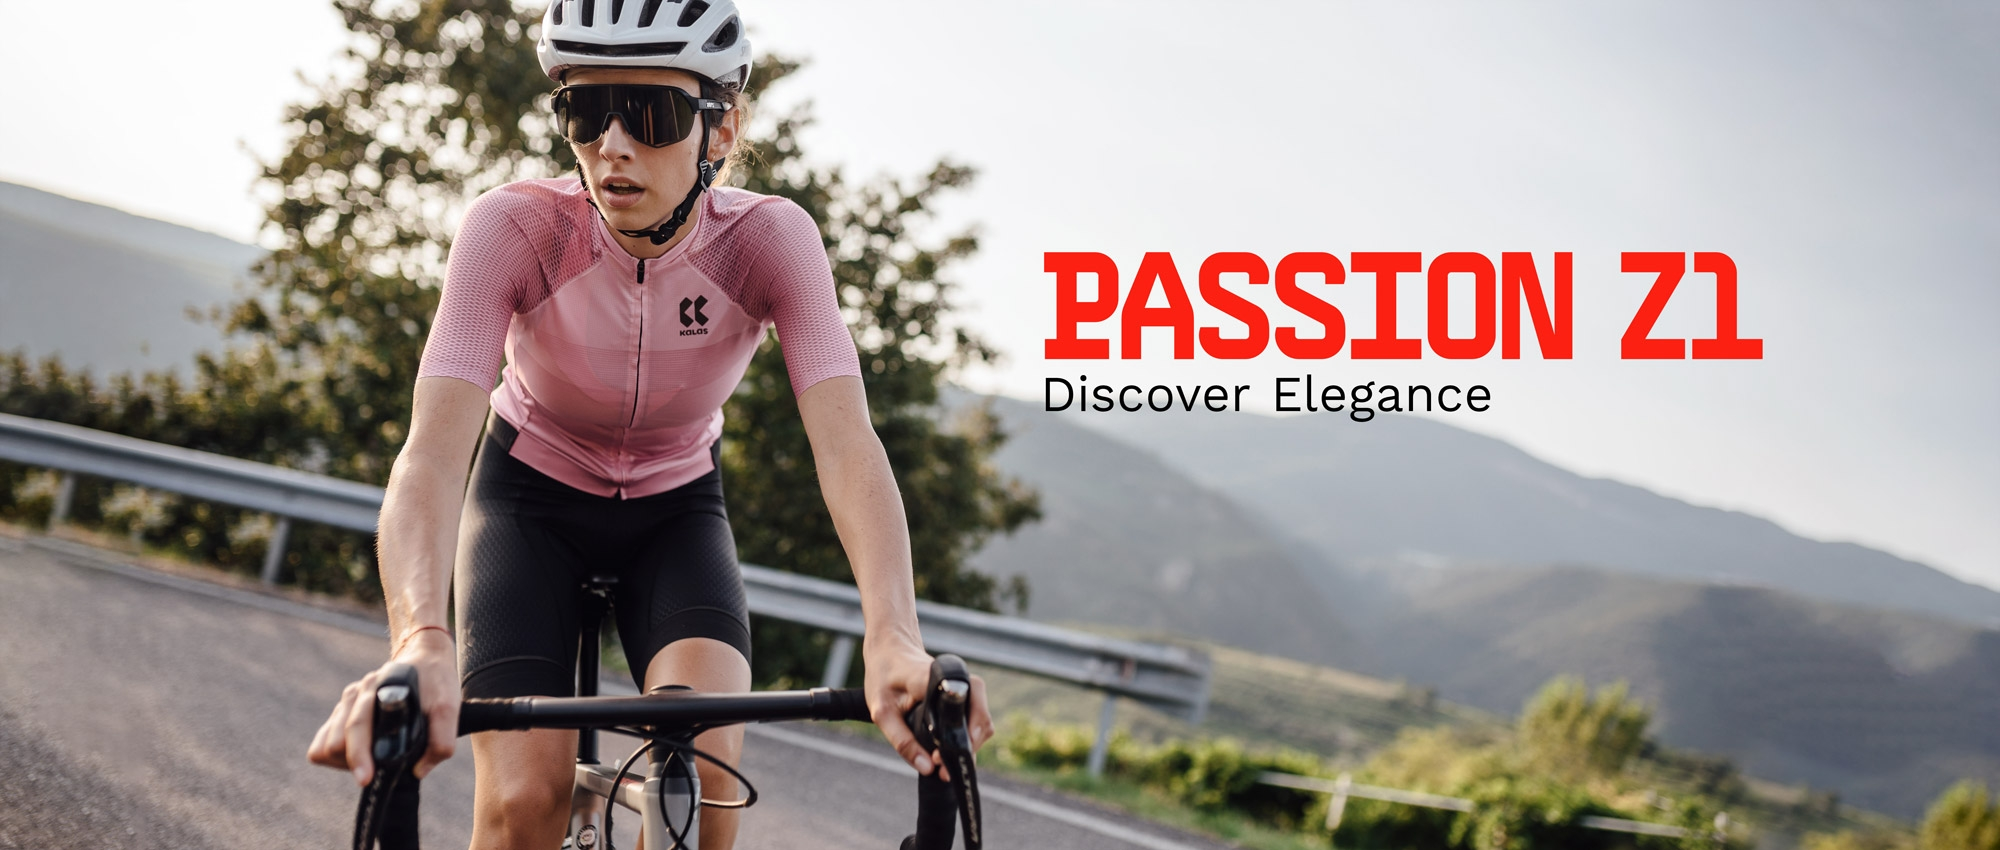 Passion Z1 - women